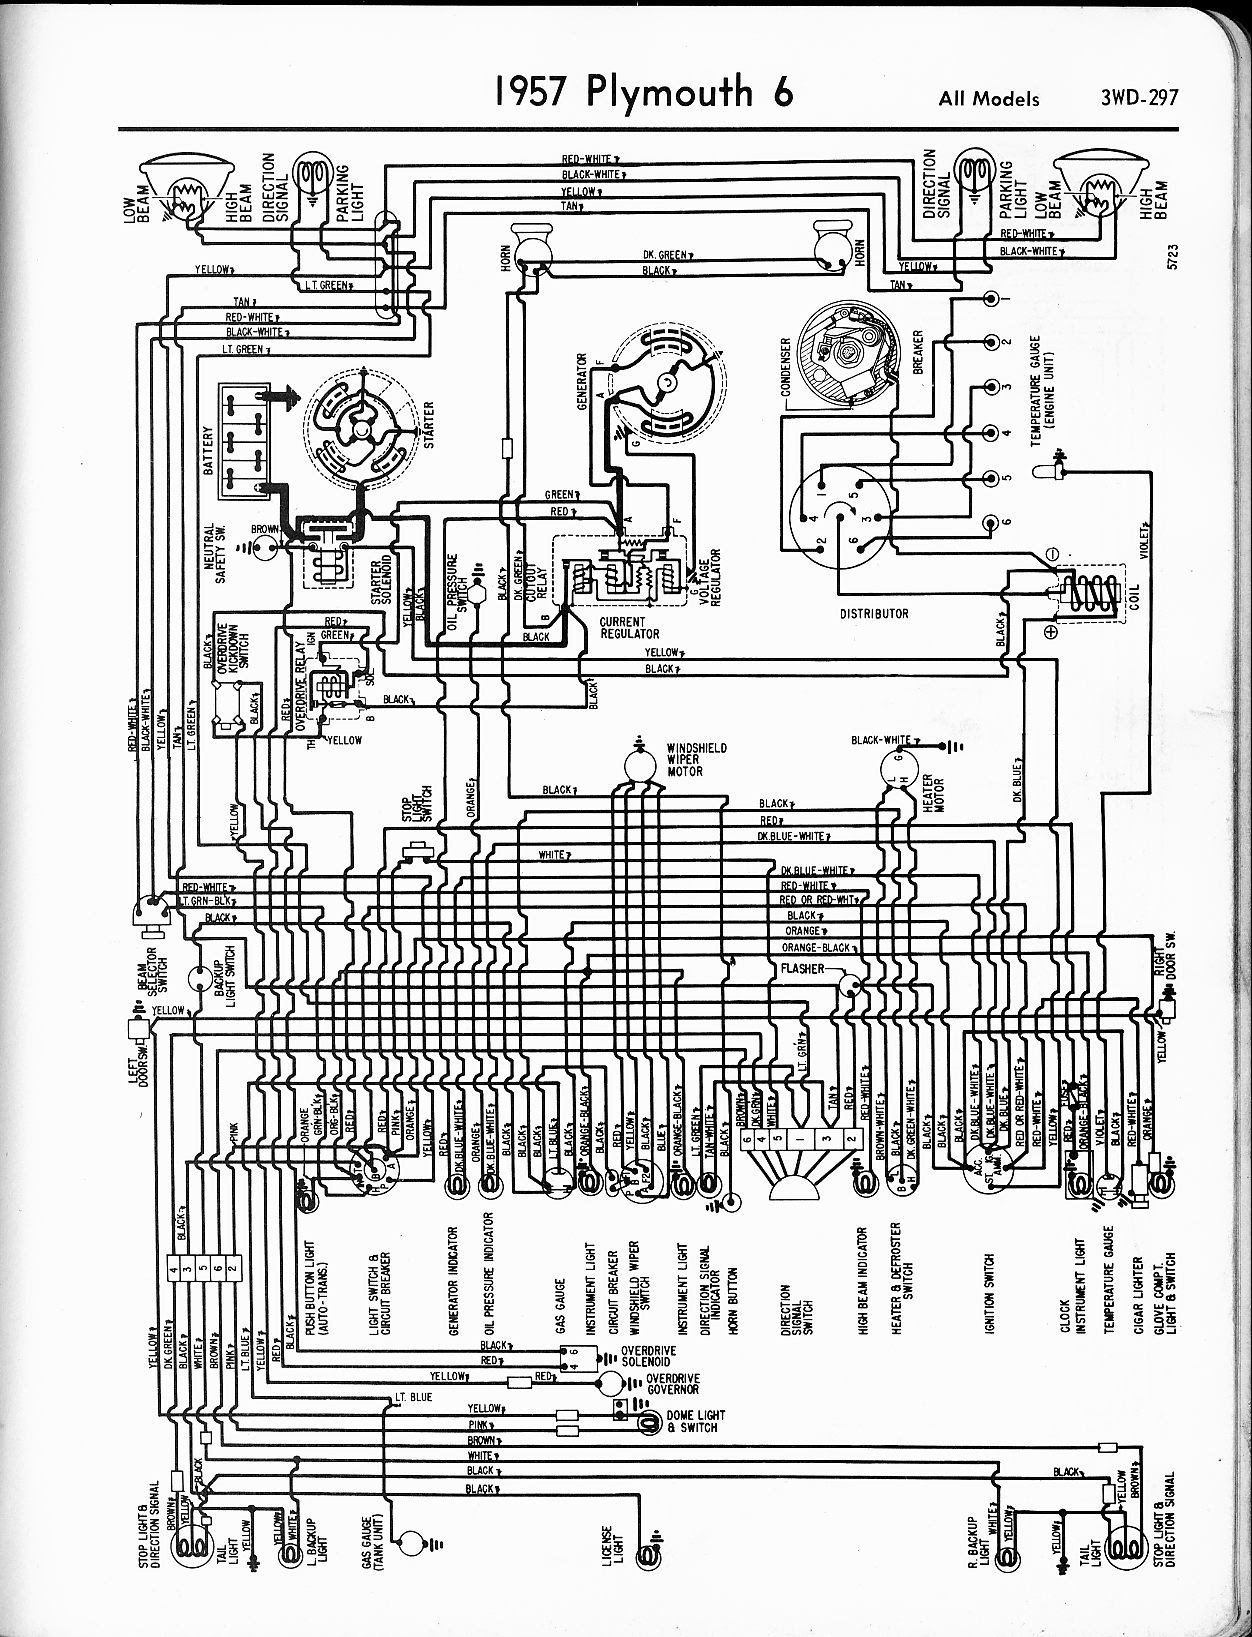 68 Plymouth Wiring Diagram 3 Hole Plug Wiring Diagram Pipiiing Layout Wiringdol Jeanjaures37 Fr